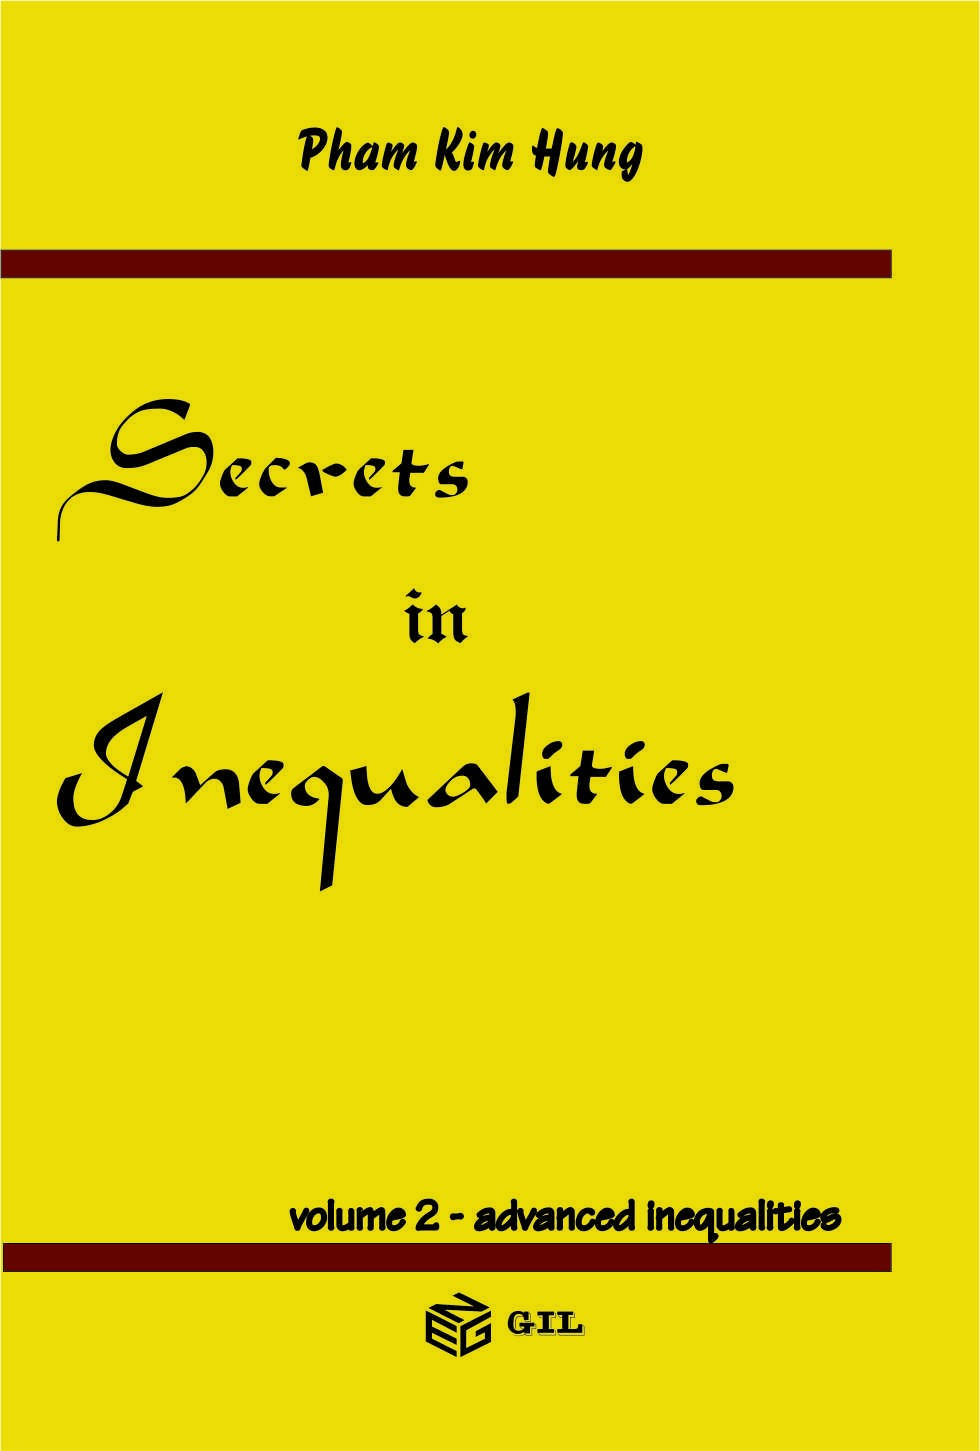 Secrets in Inequalities - advanced inequalities